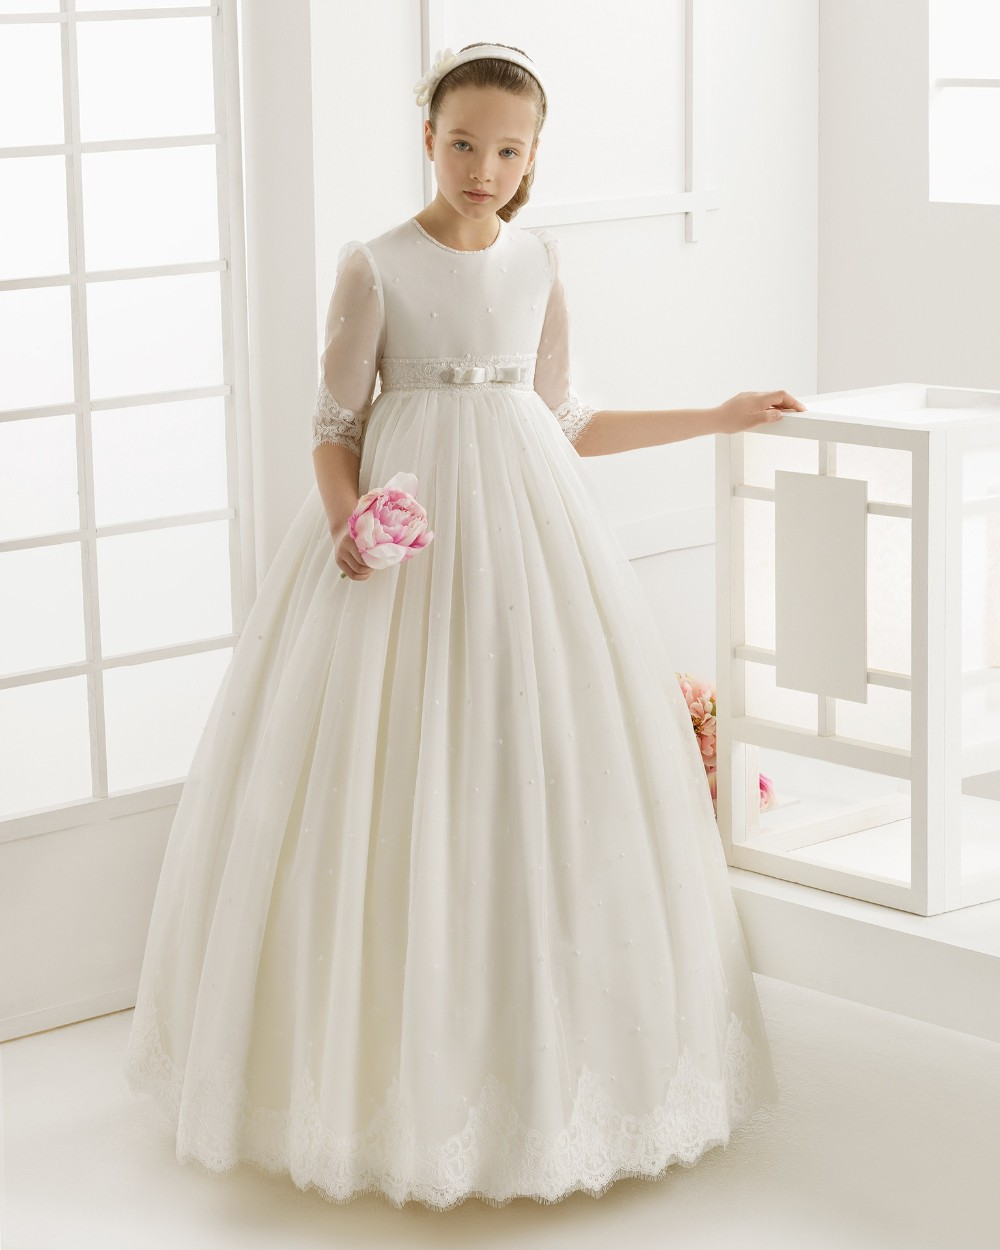 2016 Tulle Ball Gown Half Sleeve   Flower     Girl     Dresses   for weddings   girls   pageant   dresses   first communion   dresses   for   girls